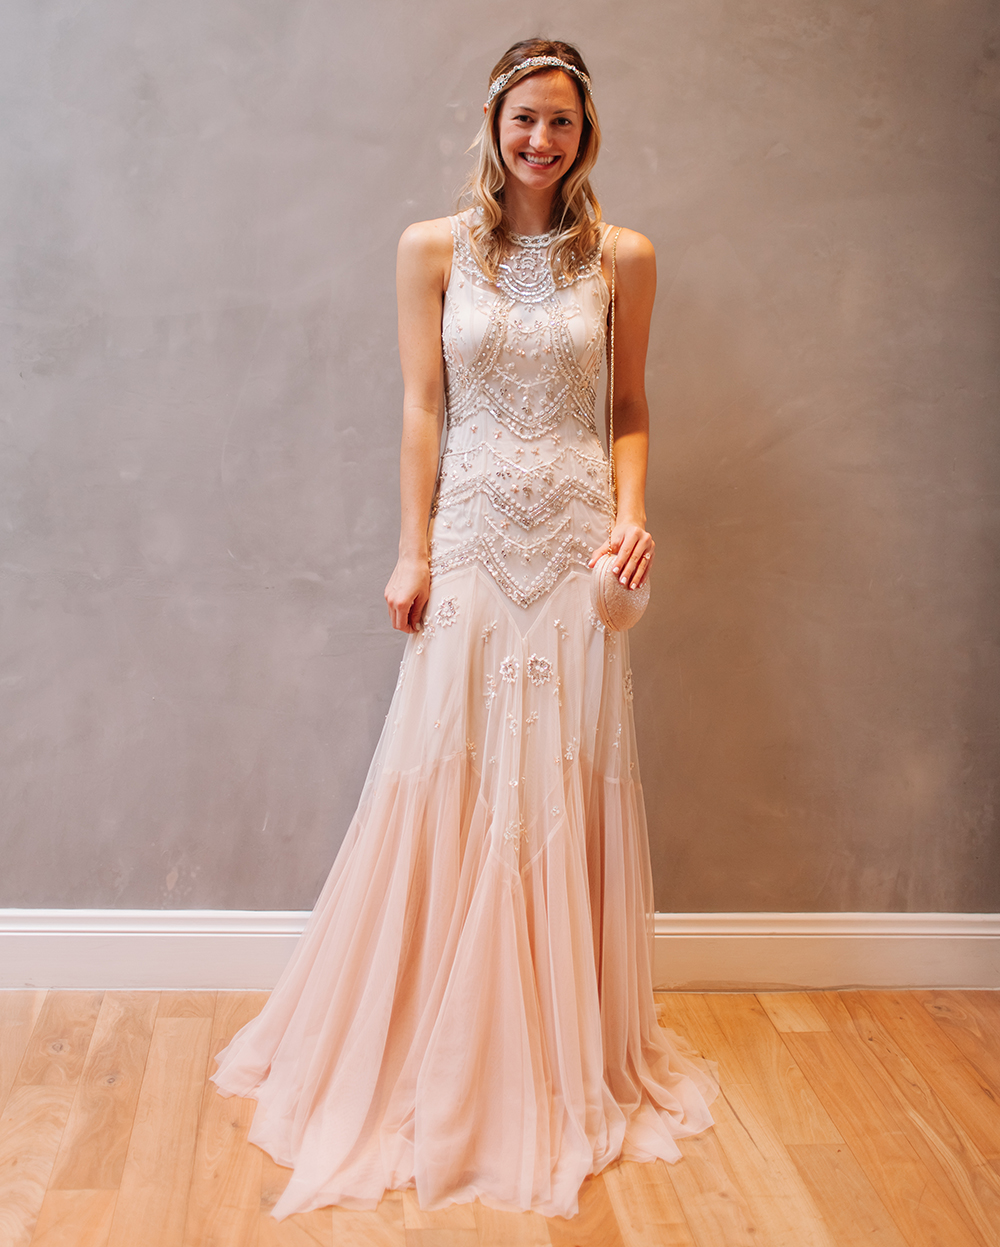 Anthropologie wedding dresses websitewedding dressesdressesss anthropologie wedding dresses website junglespirit Images